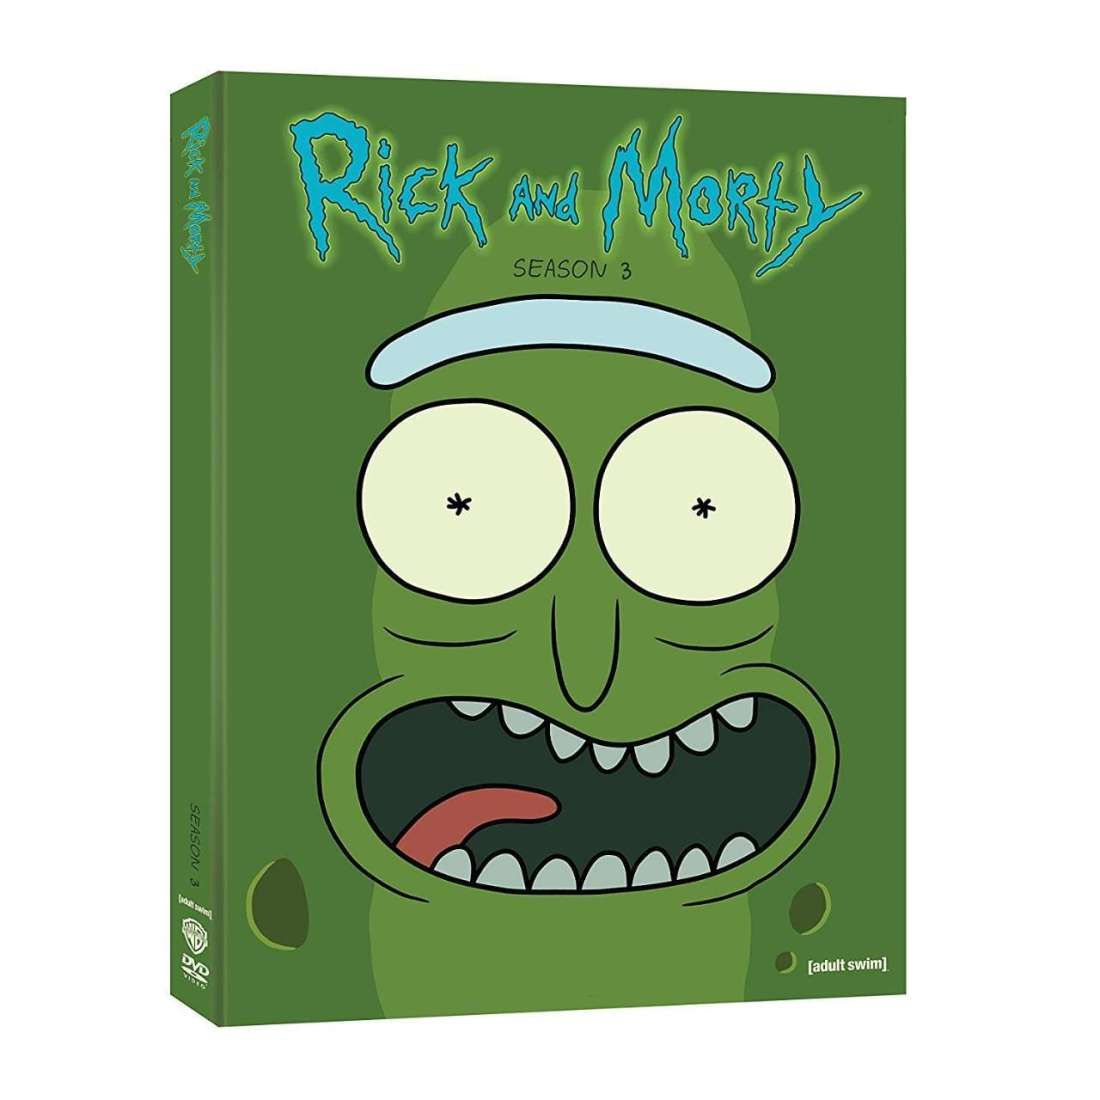 Rick and Morty DVD Season 3 Cover